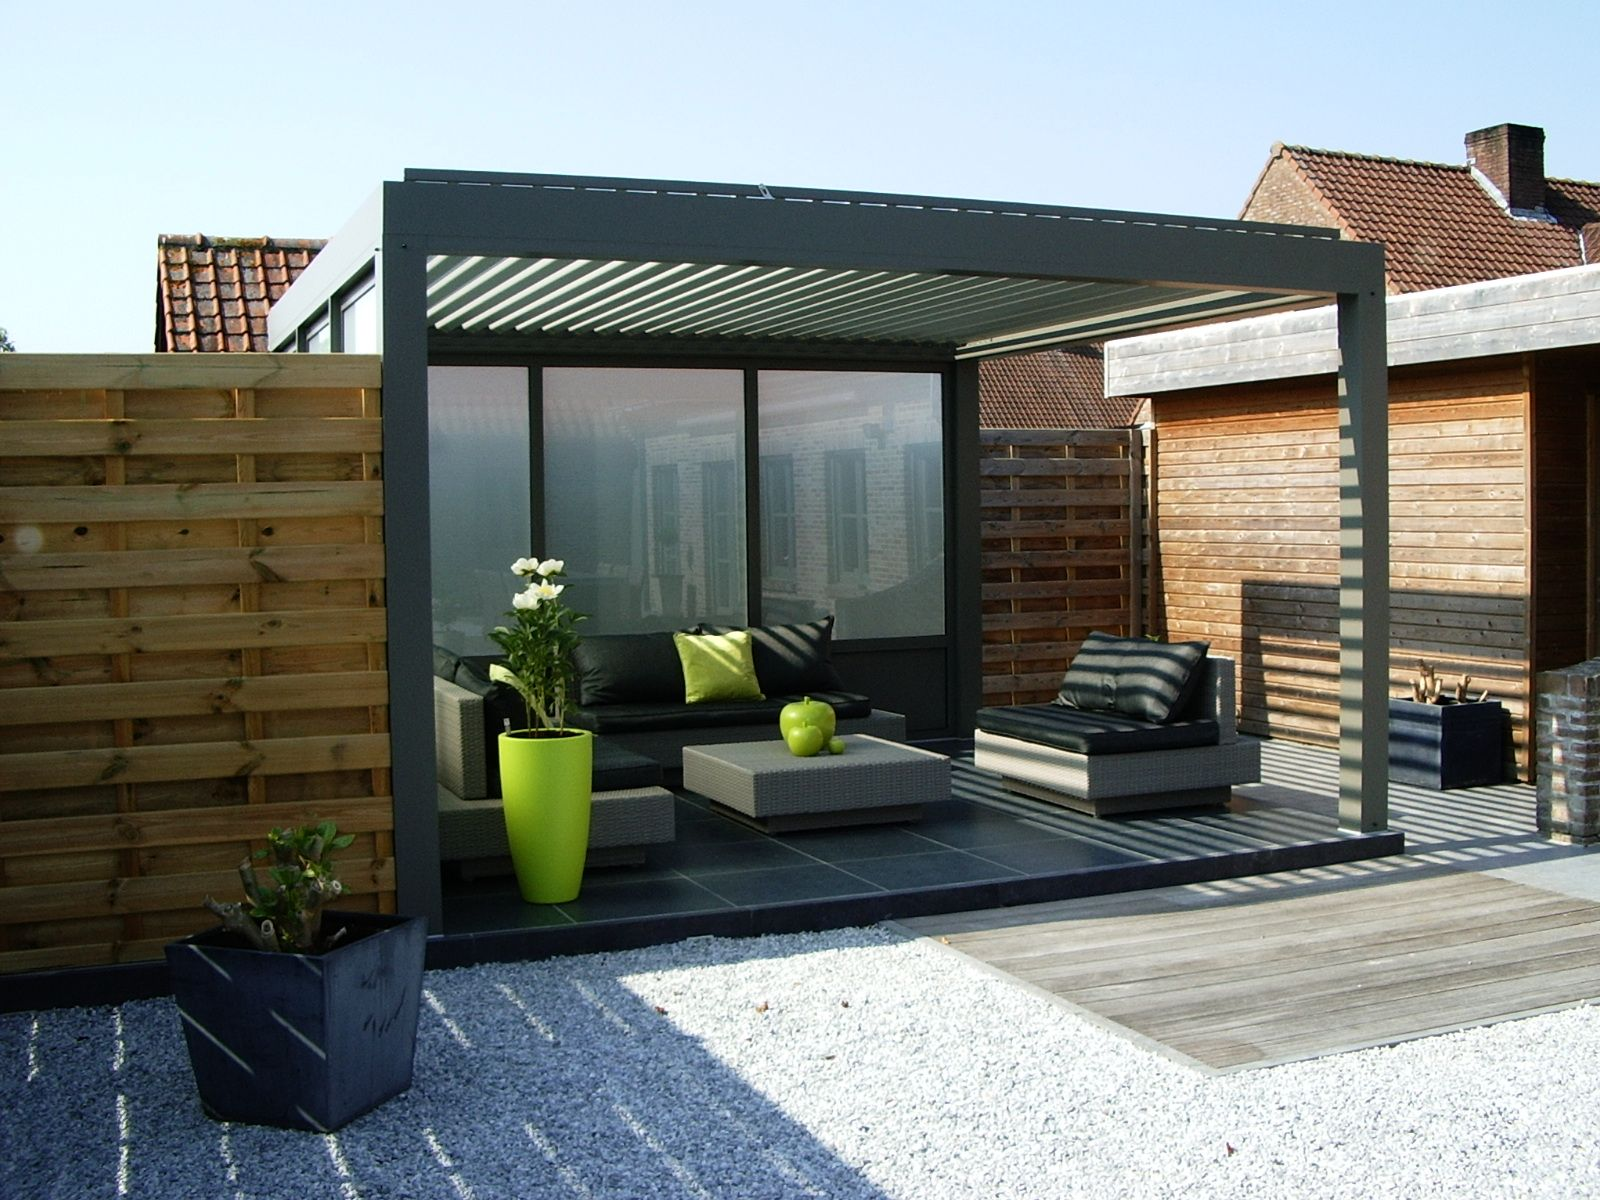 biossun benelux project terrasoverkapping pergola couverture de terrasse met avec vaste glaswand. Black Bedroom Furniture Sets. Home Design Ideas